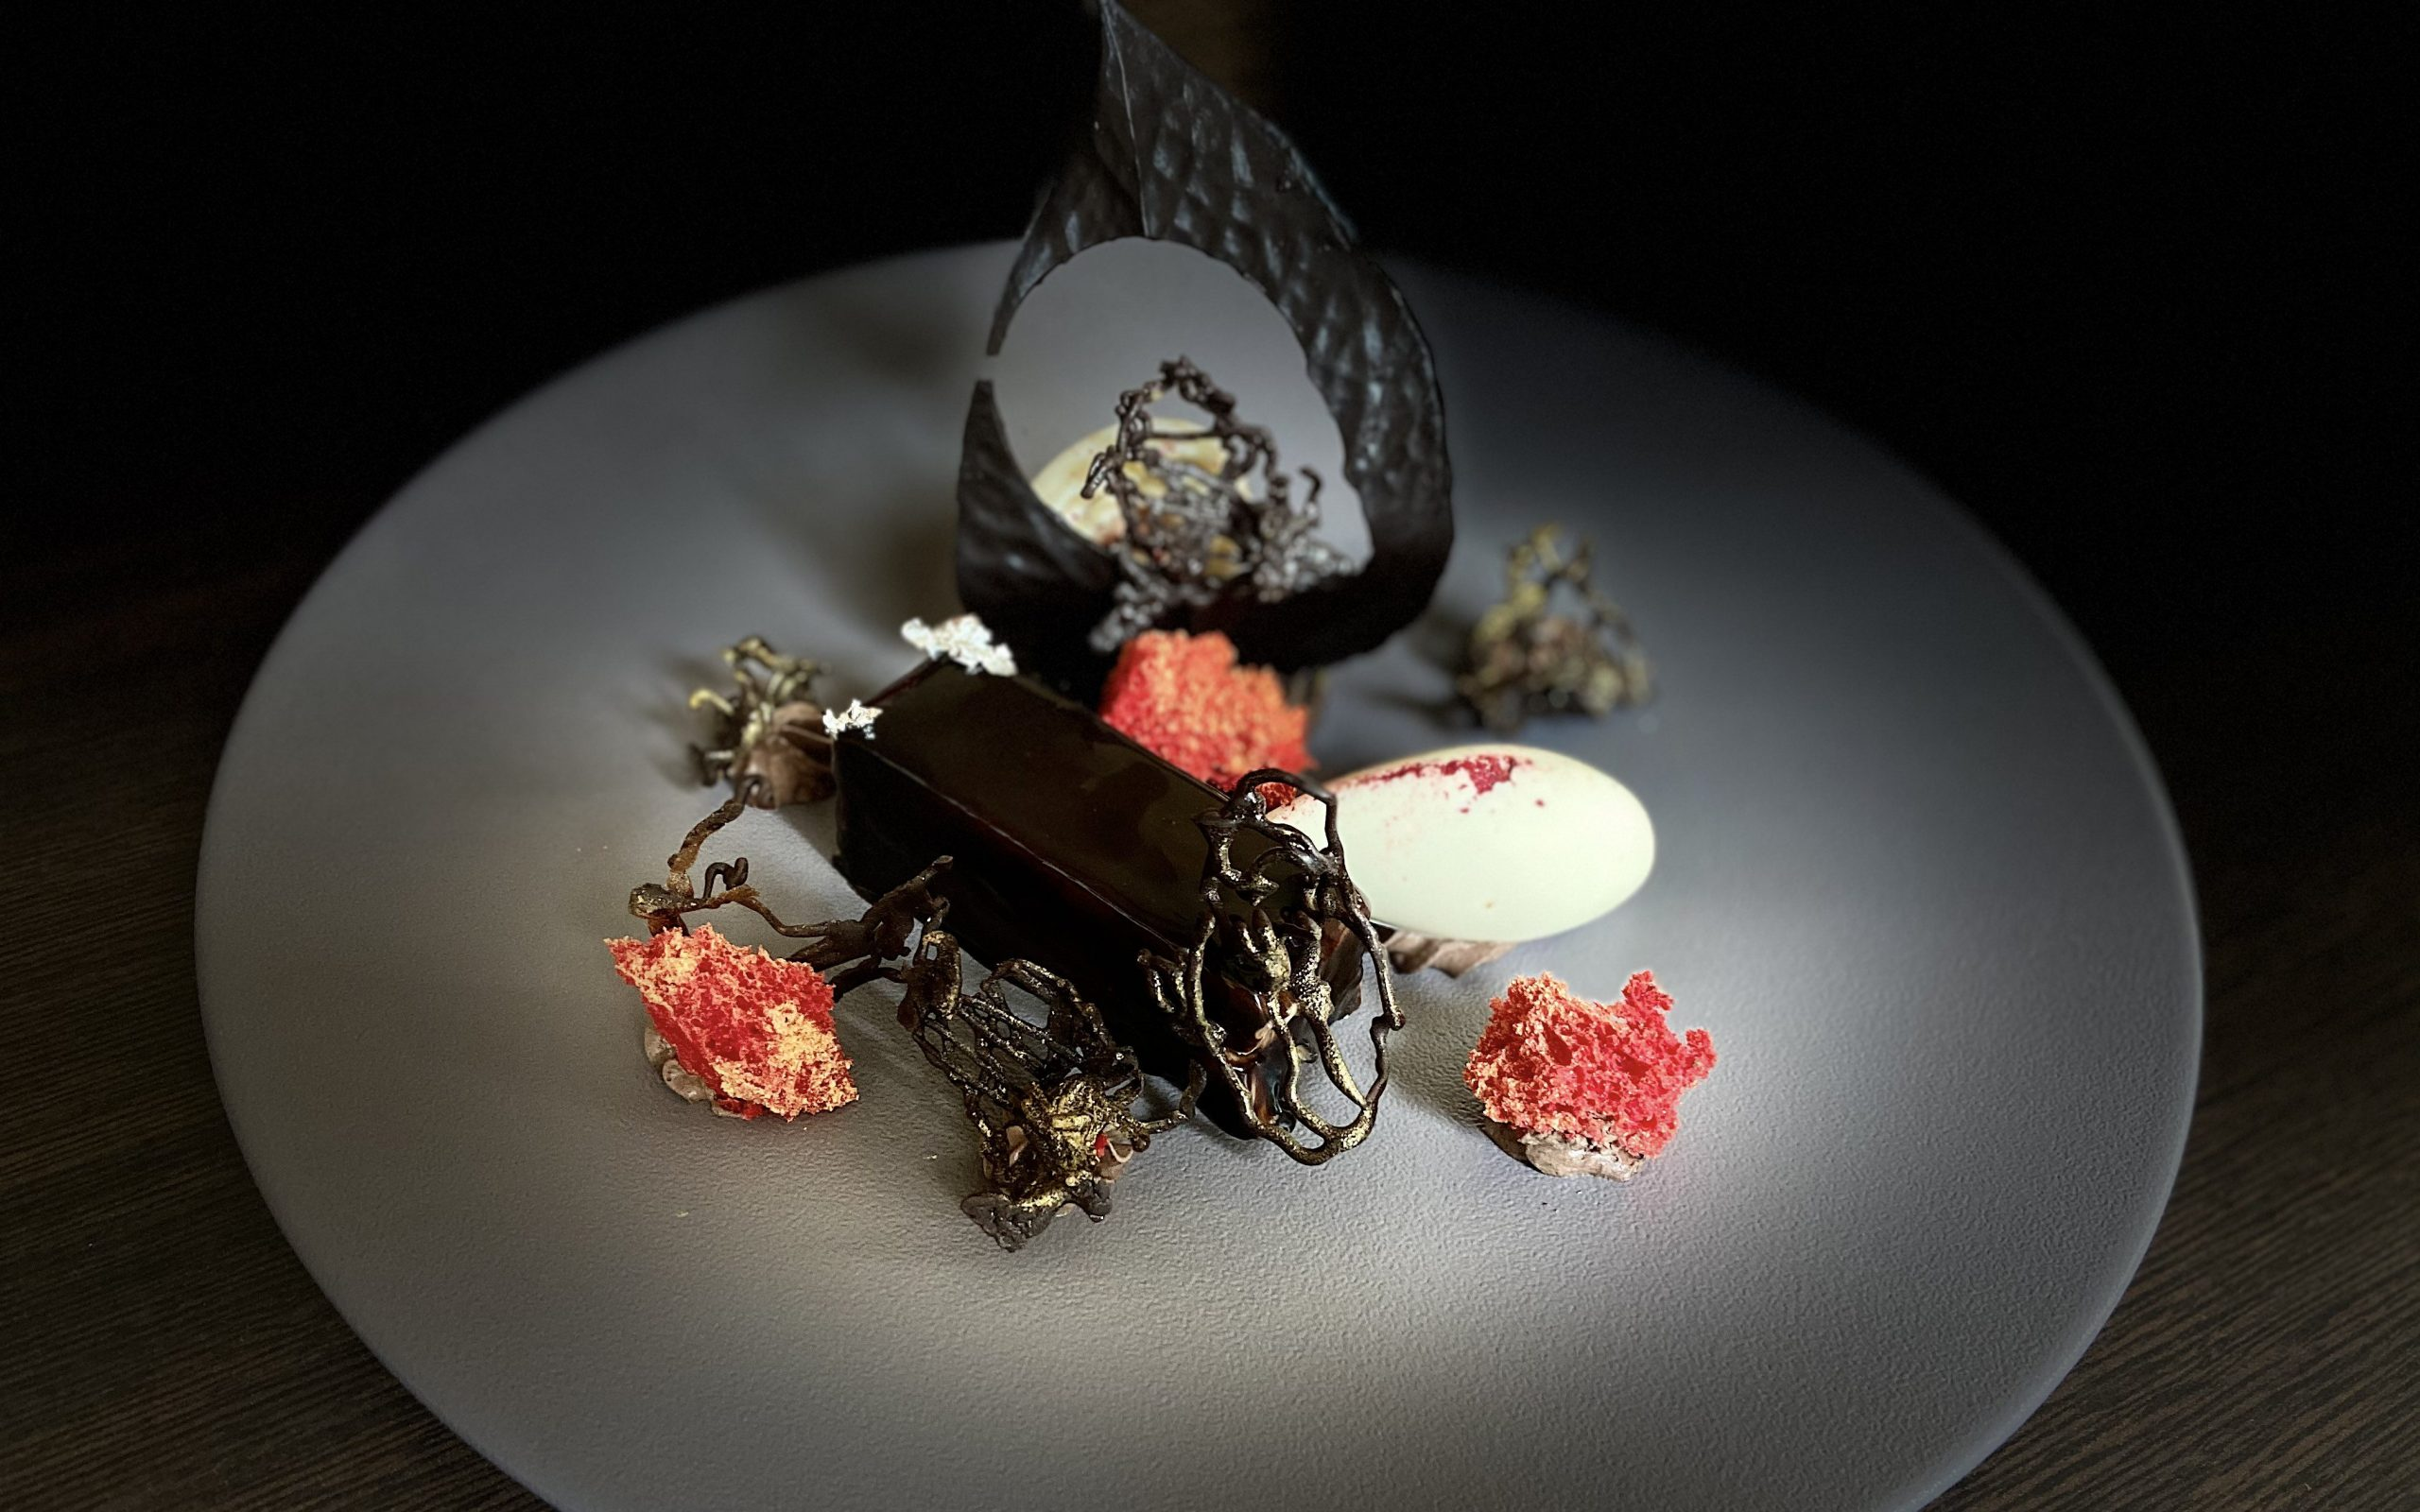 Favourite Choco Delight - Chocolate Cremeux by Exec Pastry Chef Sunil Mhatre, Meluha The Fern, Powai